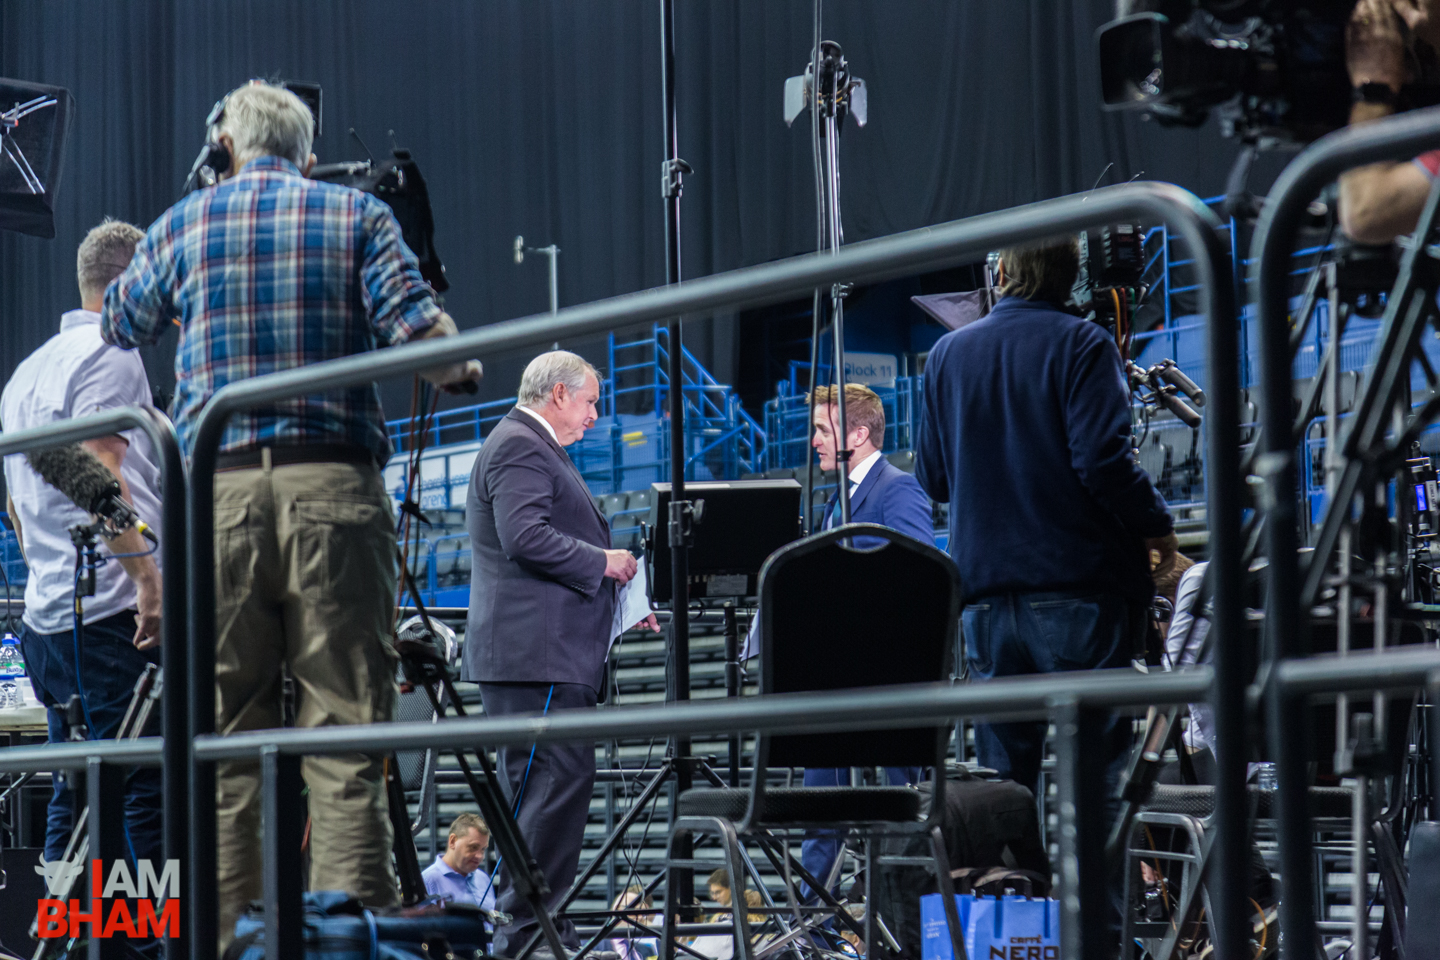 Sky News' Adam Boulton chats to ITV News correspondent Dan Rivers during the West Midlands Mayoral Election count in Birmingham